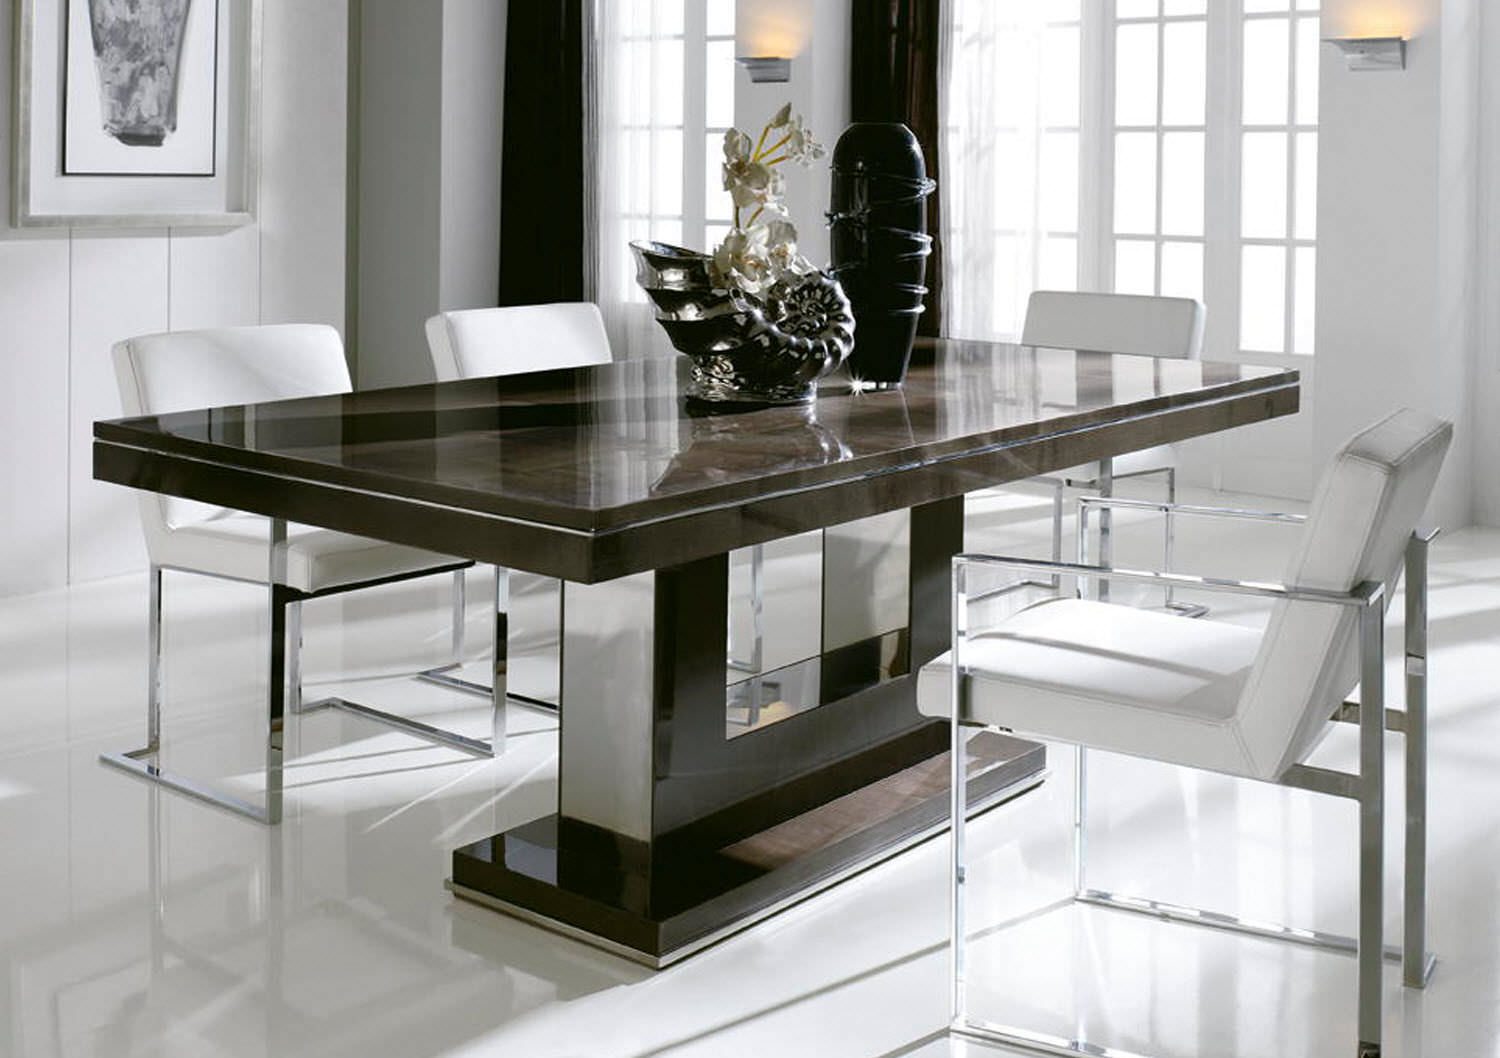 Contemporary Dining Room Tables And Chairs Amazing Mesa De Comedor Extensible Moderna Verona  Demarqueses  Столики Design Inspiration